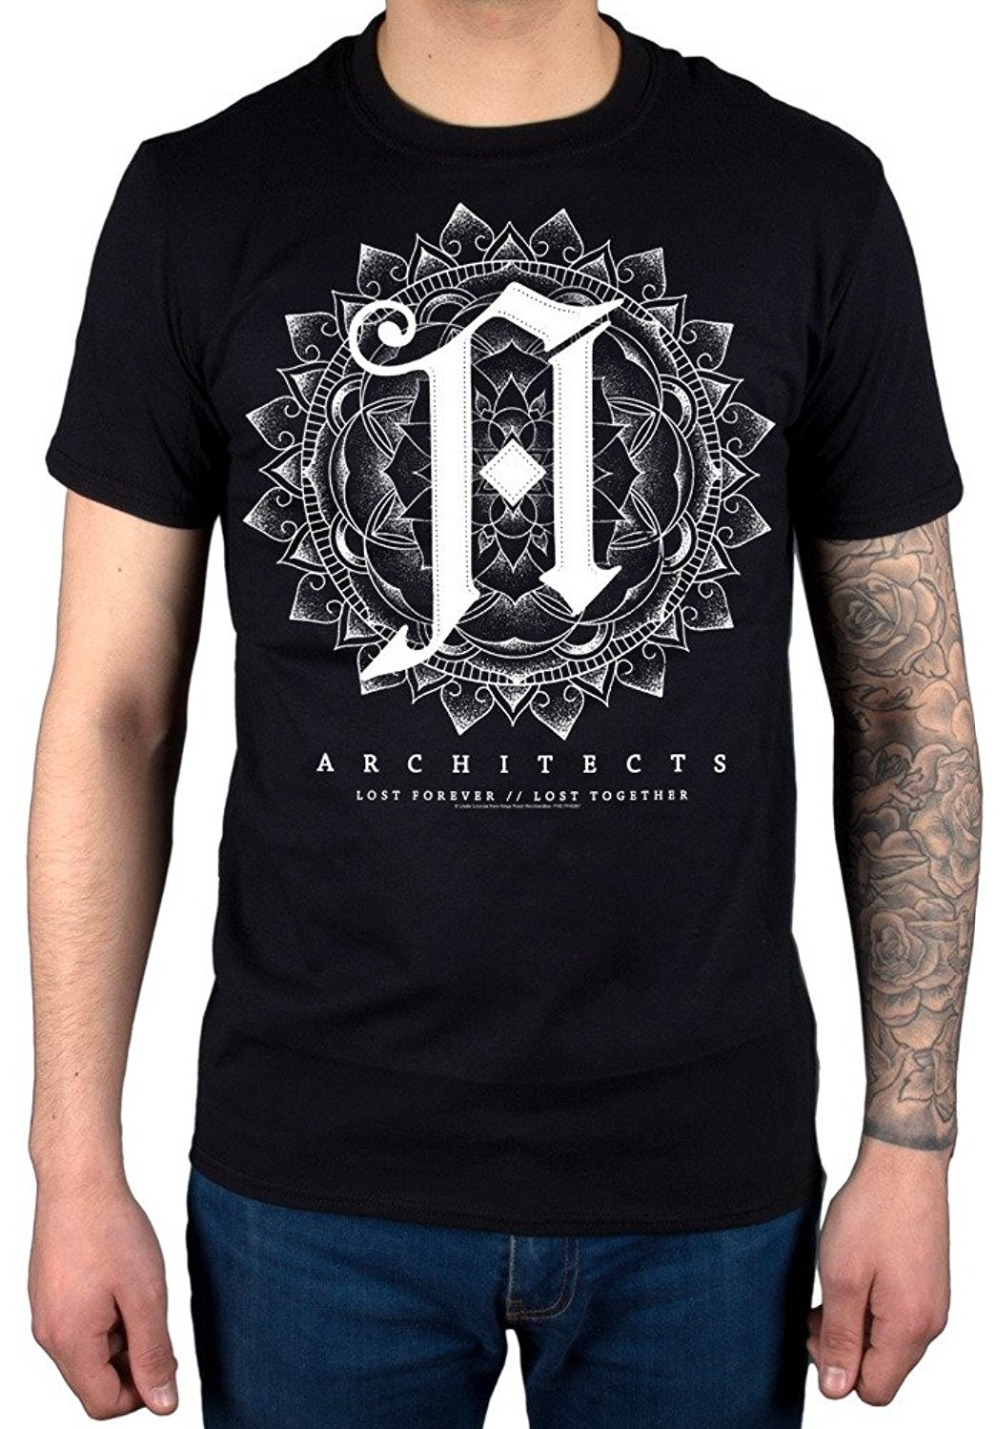 Architects Lost Foever Lost Together T-Shirt Licensed Merchandise Casual Short Sleeve Mens Fitness T Shirt Black